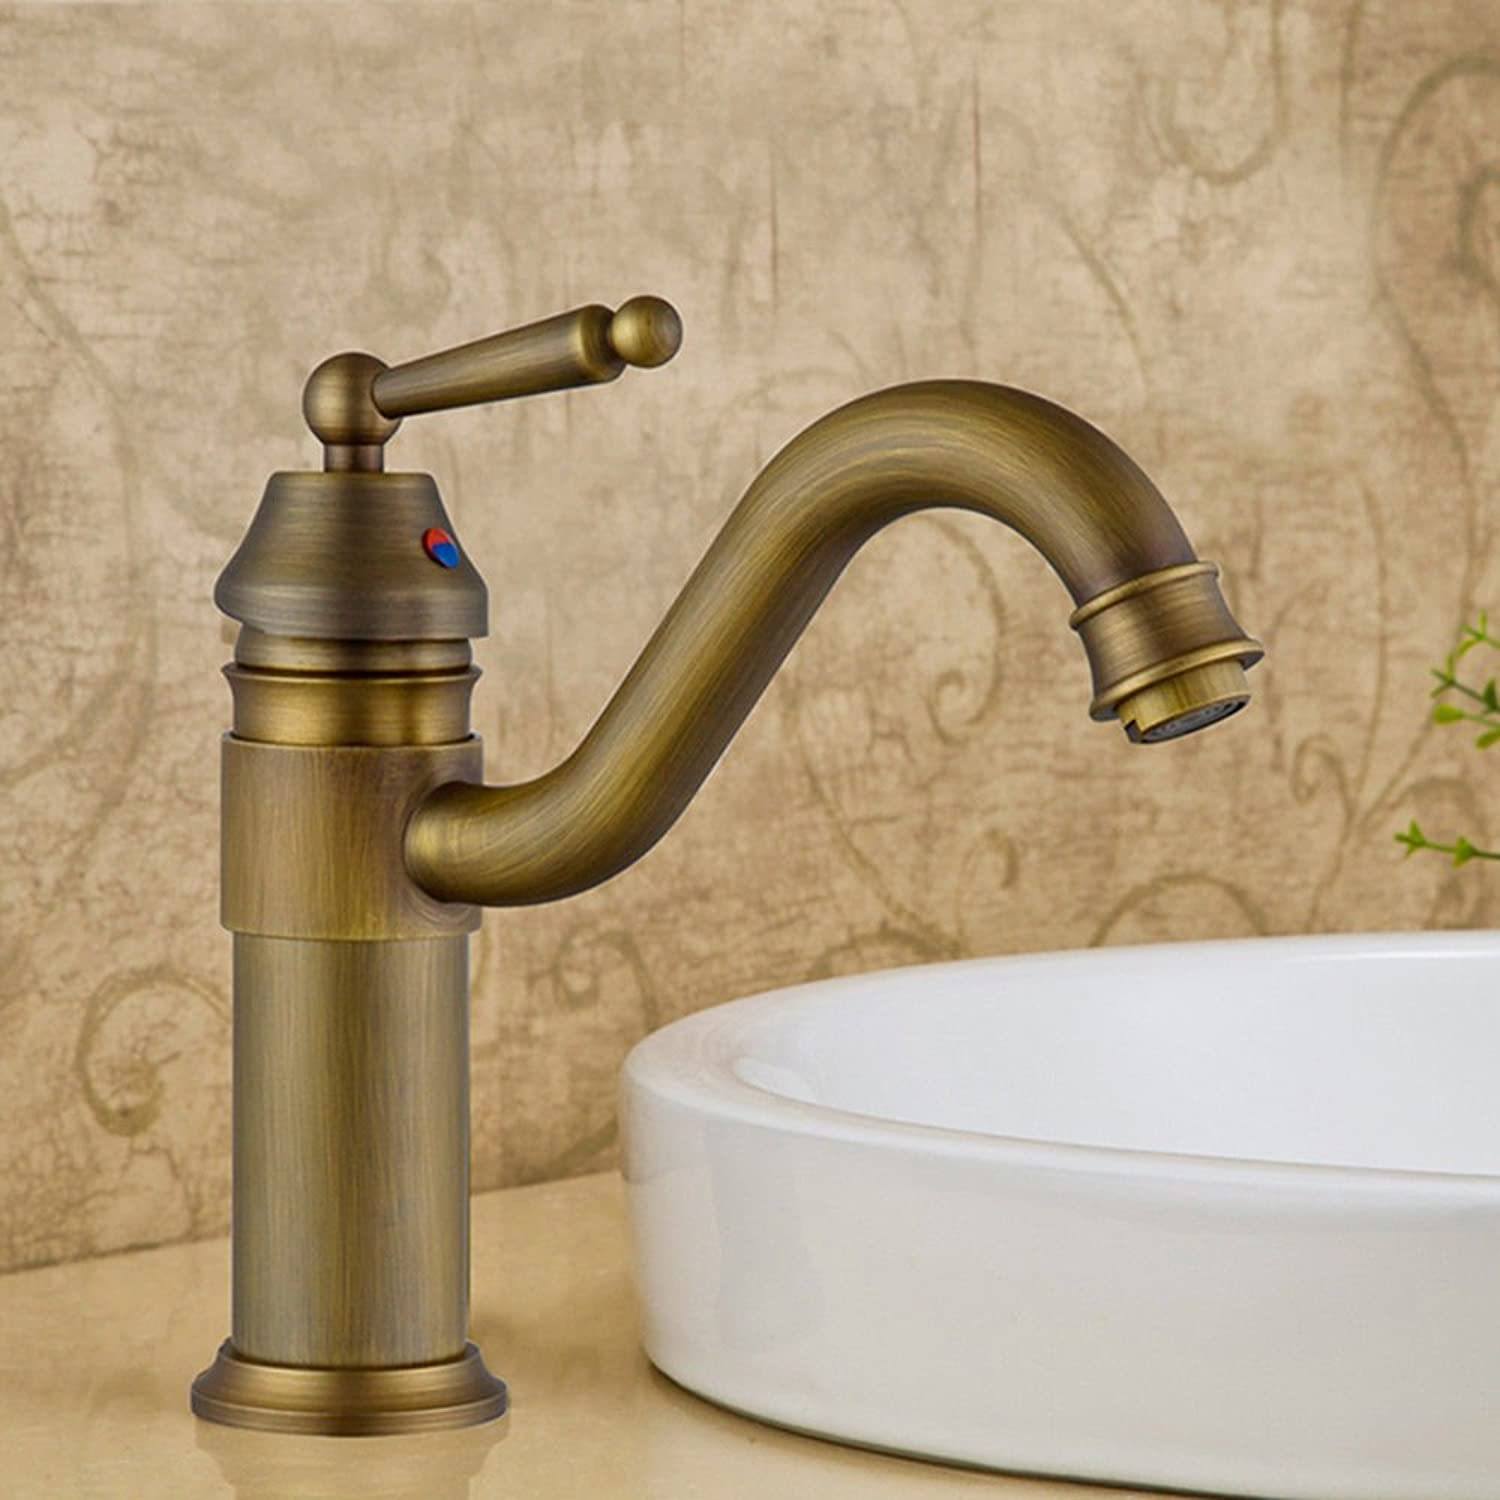 Gyps Faucet Washbasin Single-Lever Mixer Tap Bathroom Tap Kitchen Faucet Wash Basin Fittings Antique Copper Cold Taps Plus High Single Hole Seat Bench Antique Faucet Antique Faucet